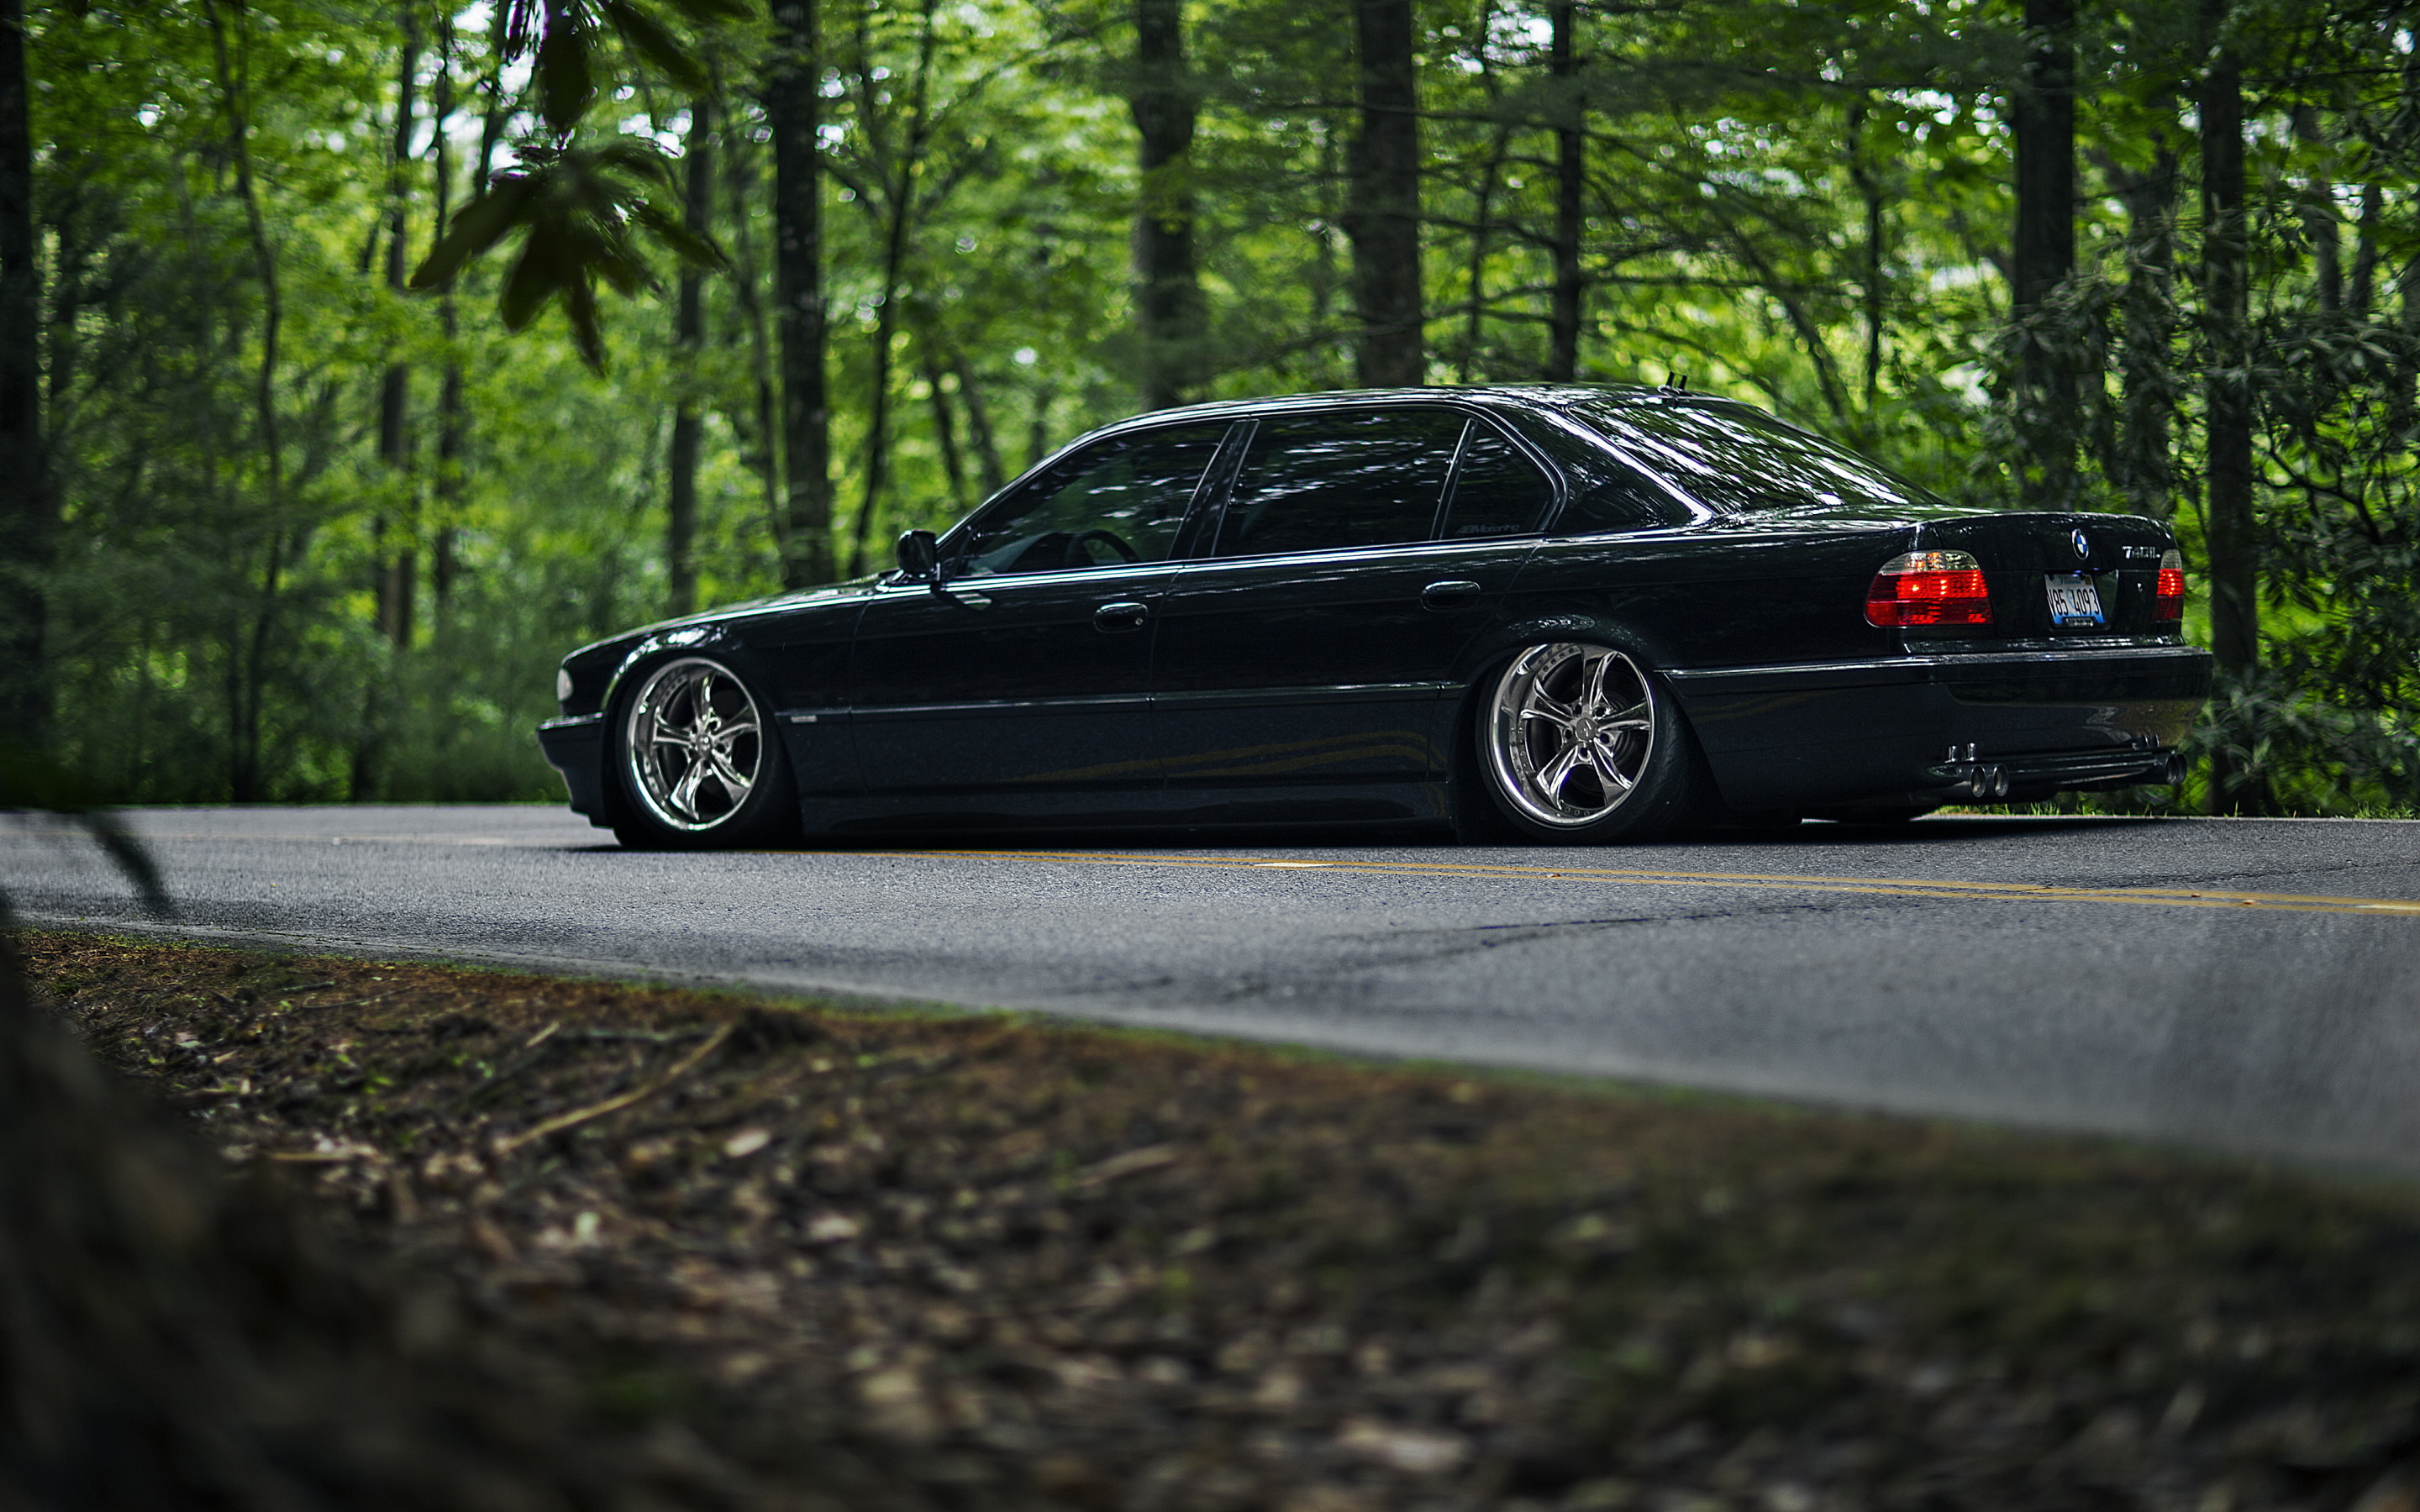 Download Wallpaper Car Bmw Black E38 Stance 7 Series 740il Section Bmw In Resolution 2880x1800